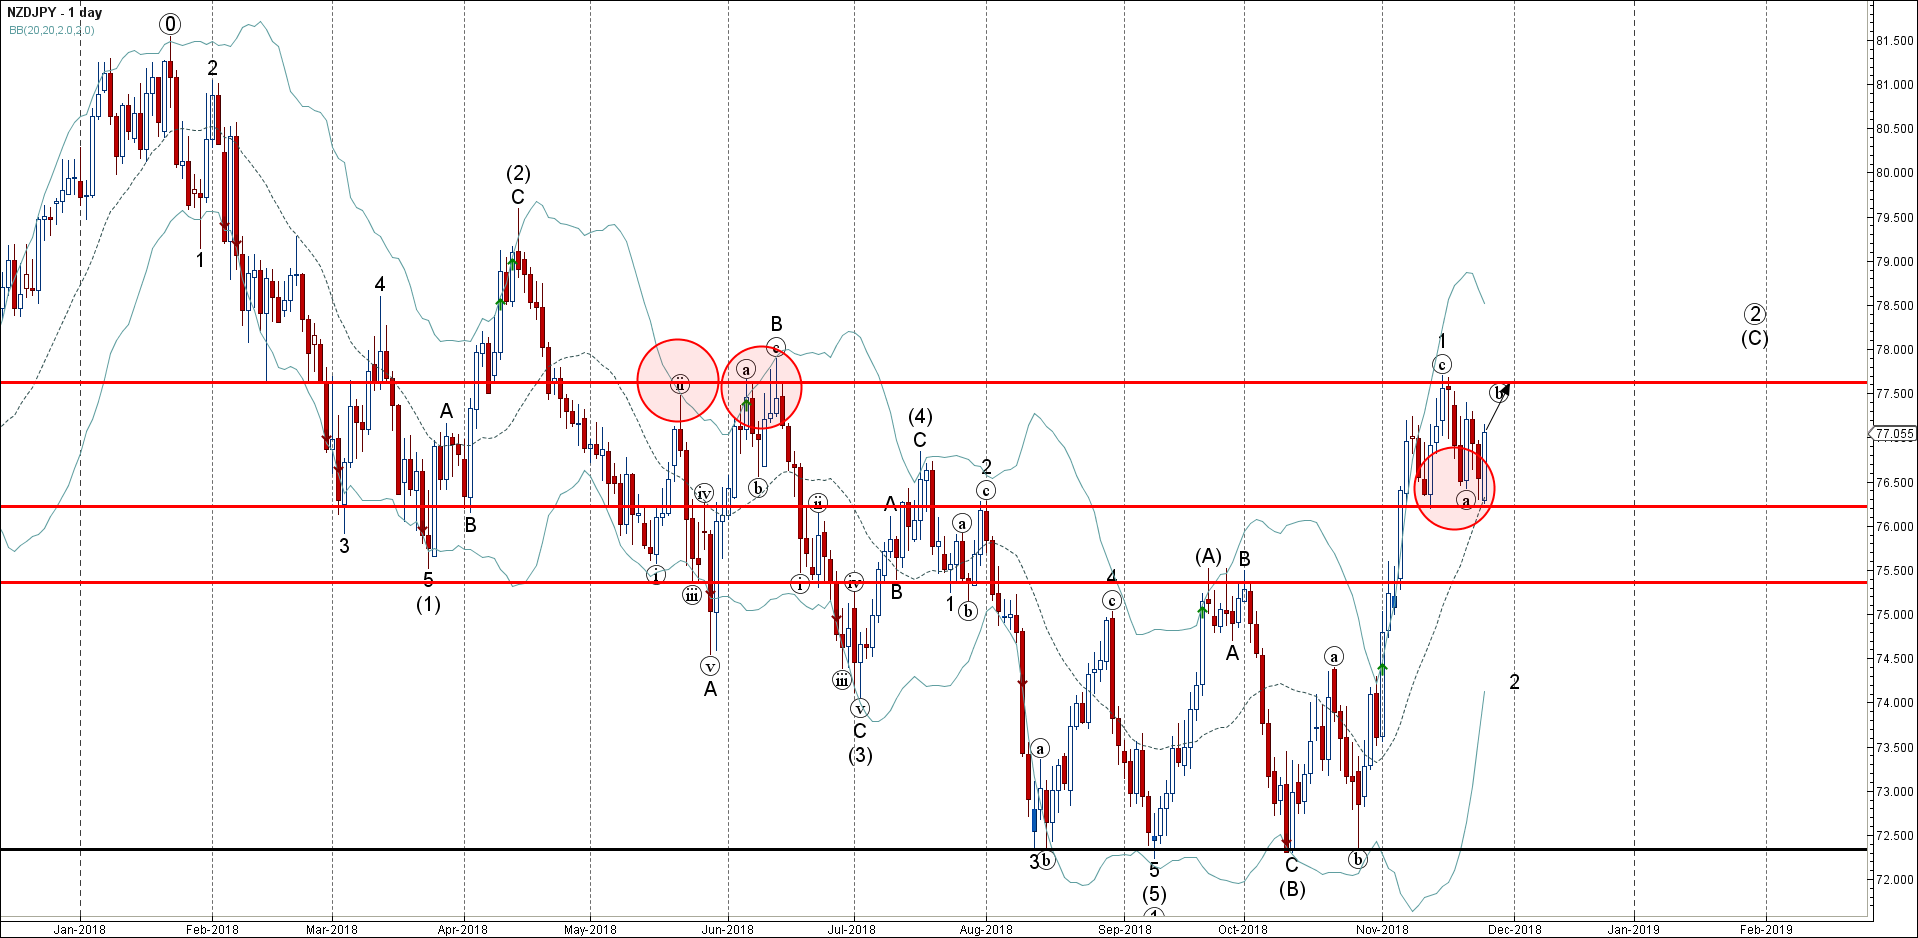 NZDJPY reversed up from the key support level 76.20